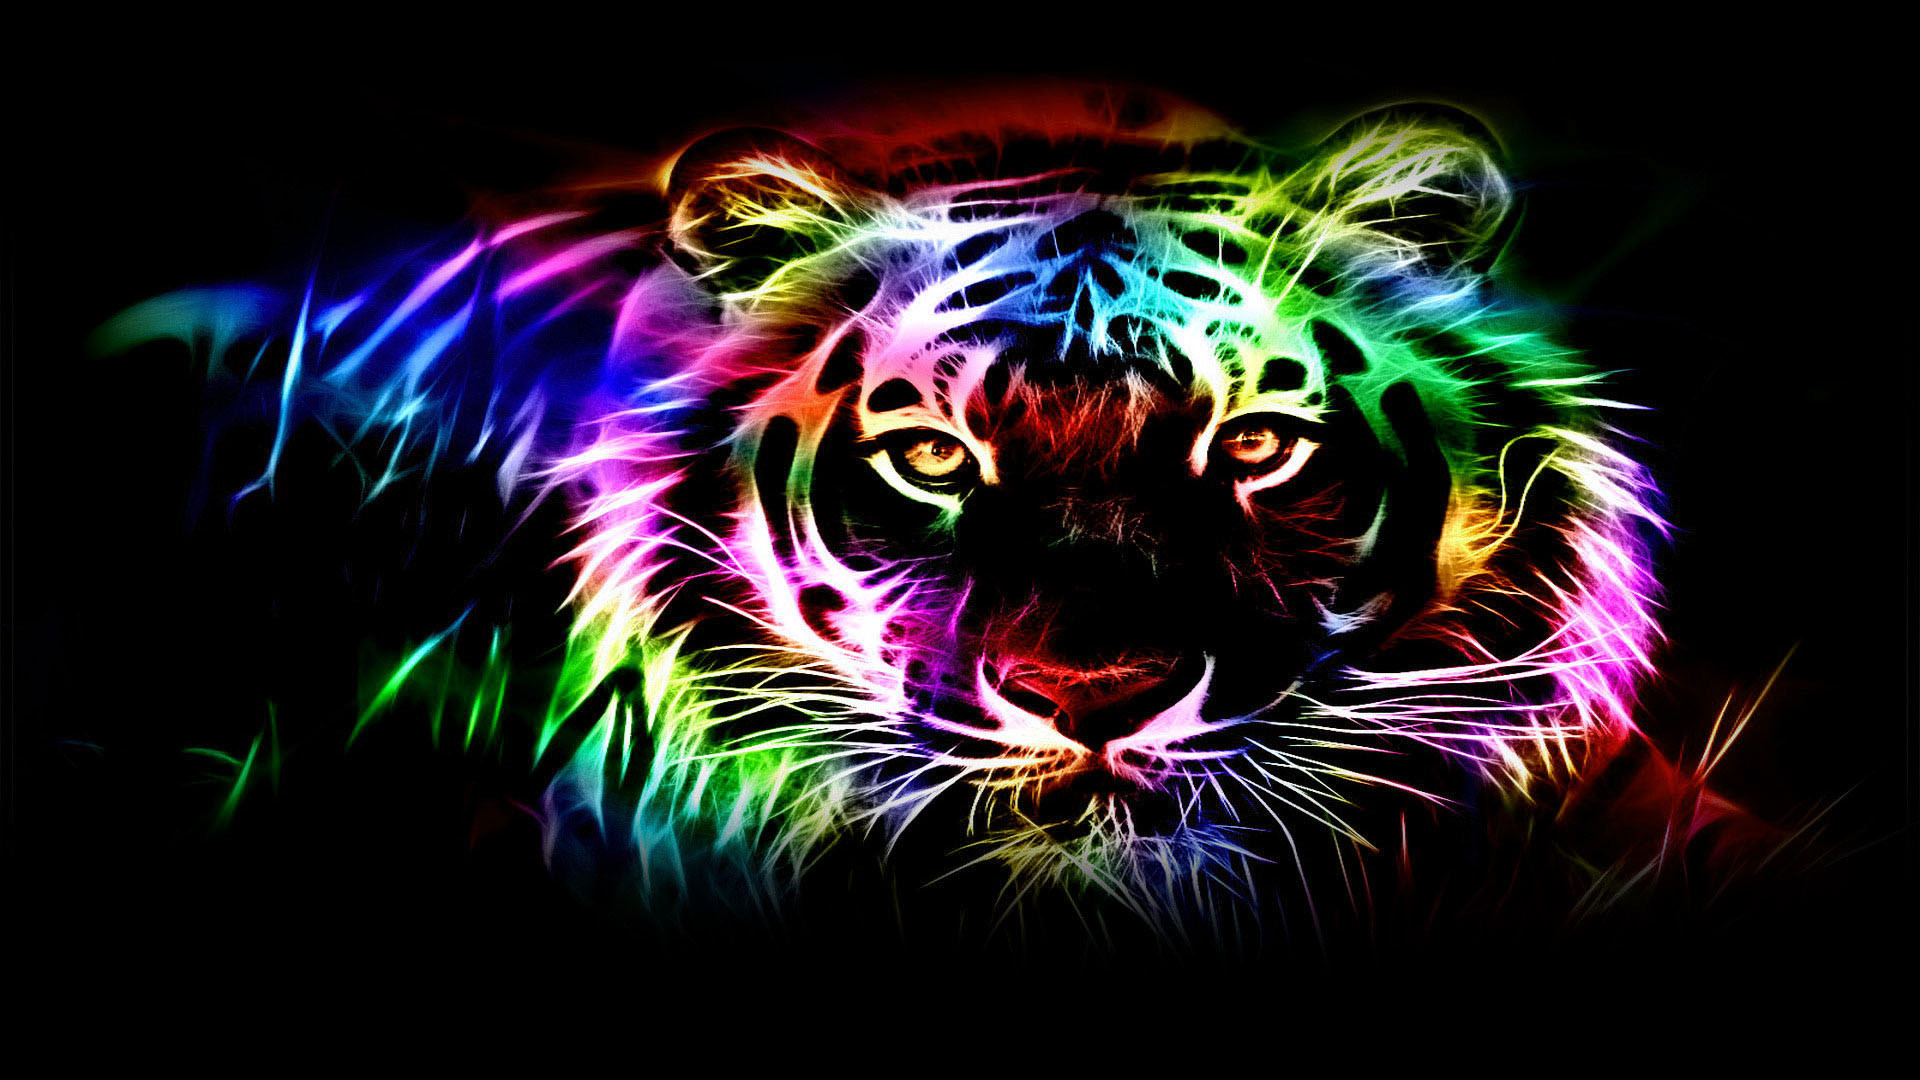 1920x1080 Tiger Neon Wallpapers. Tiger Abstract Picture